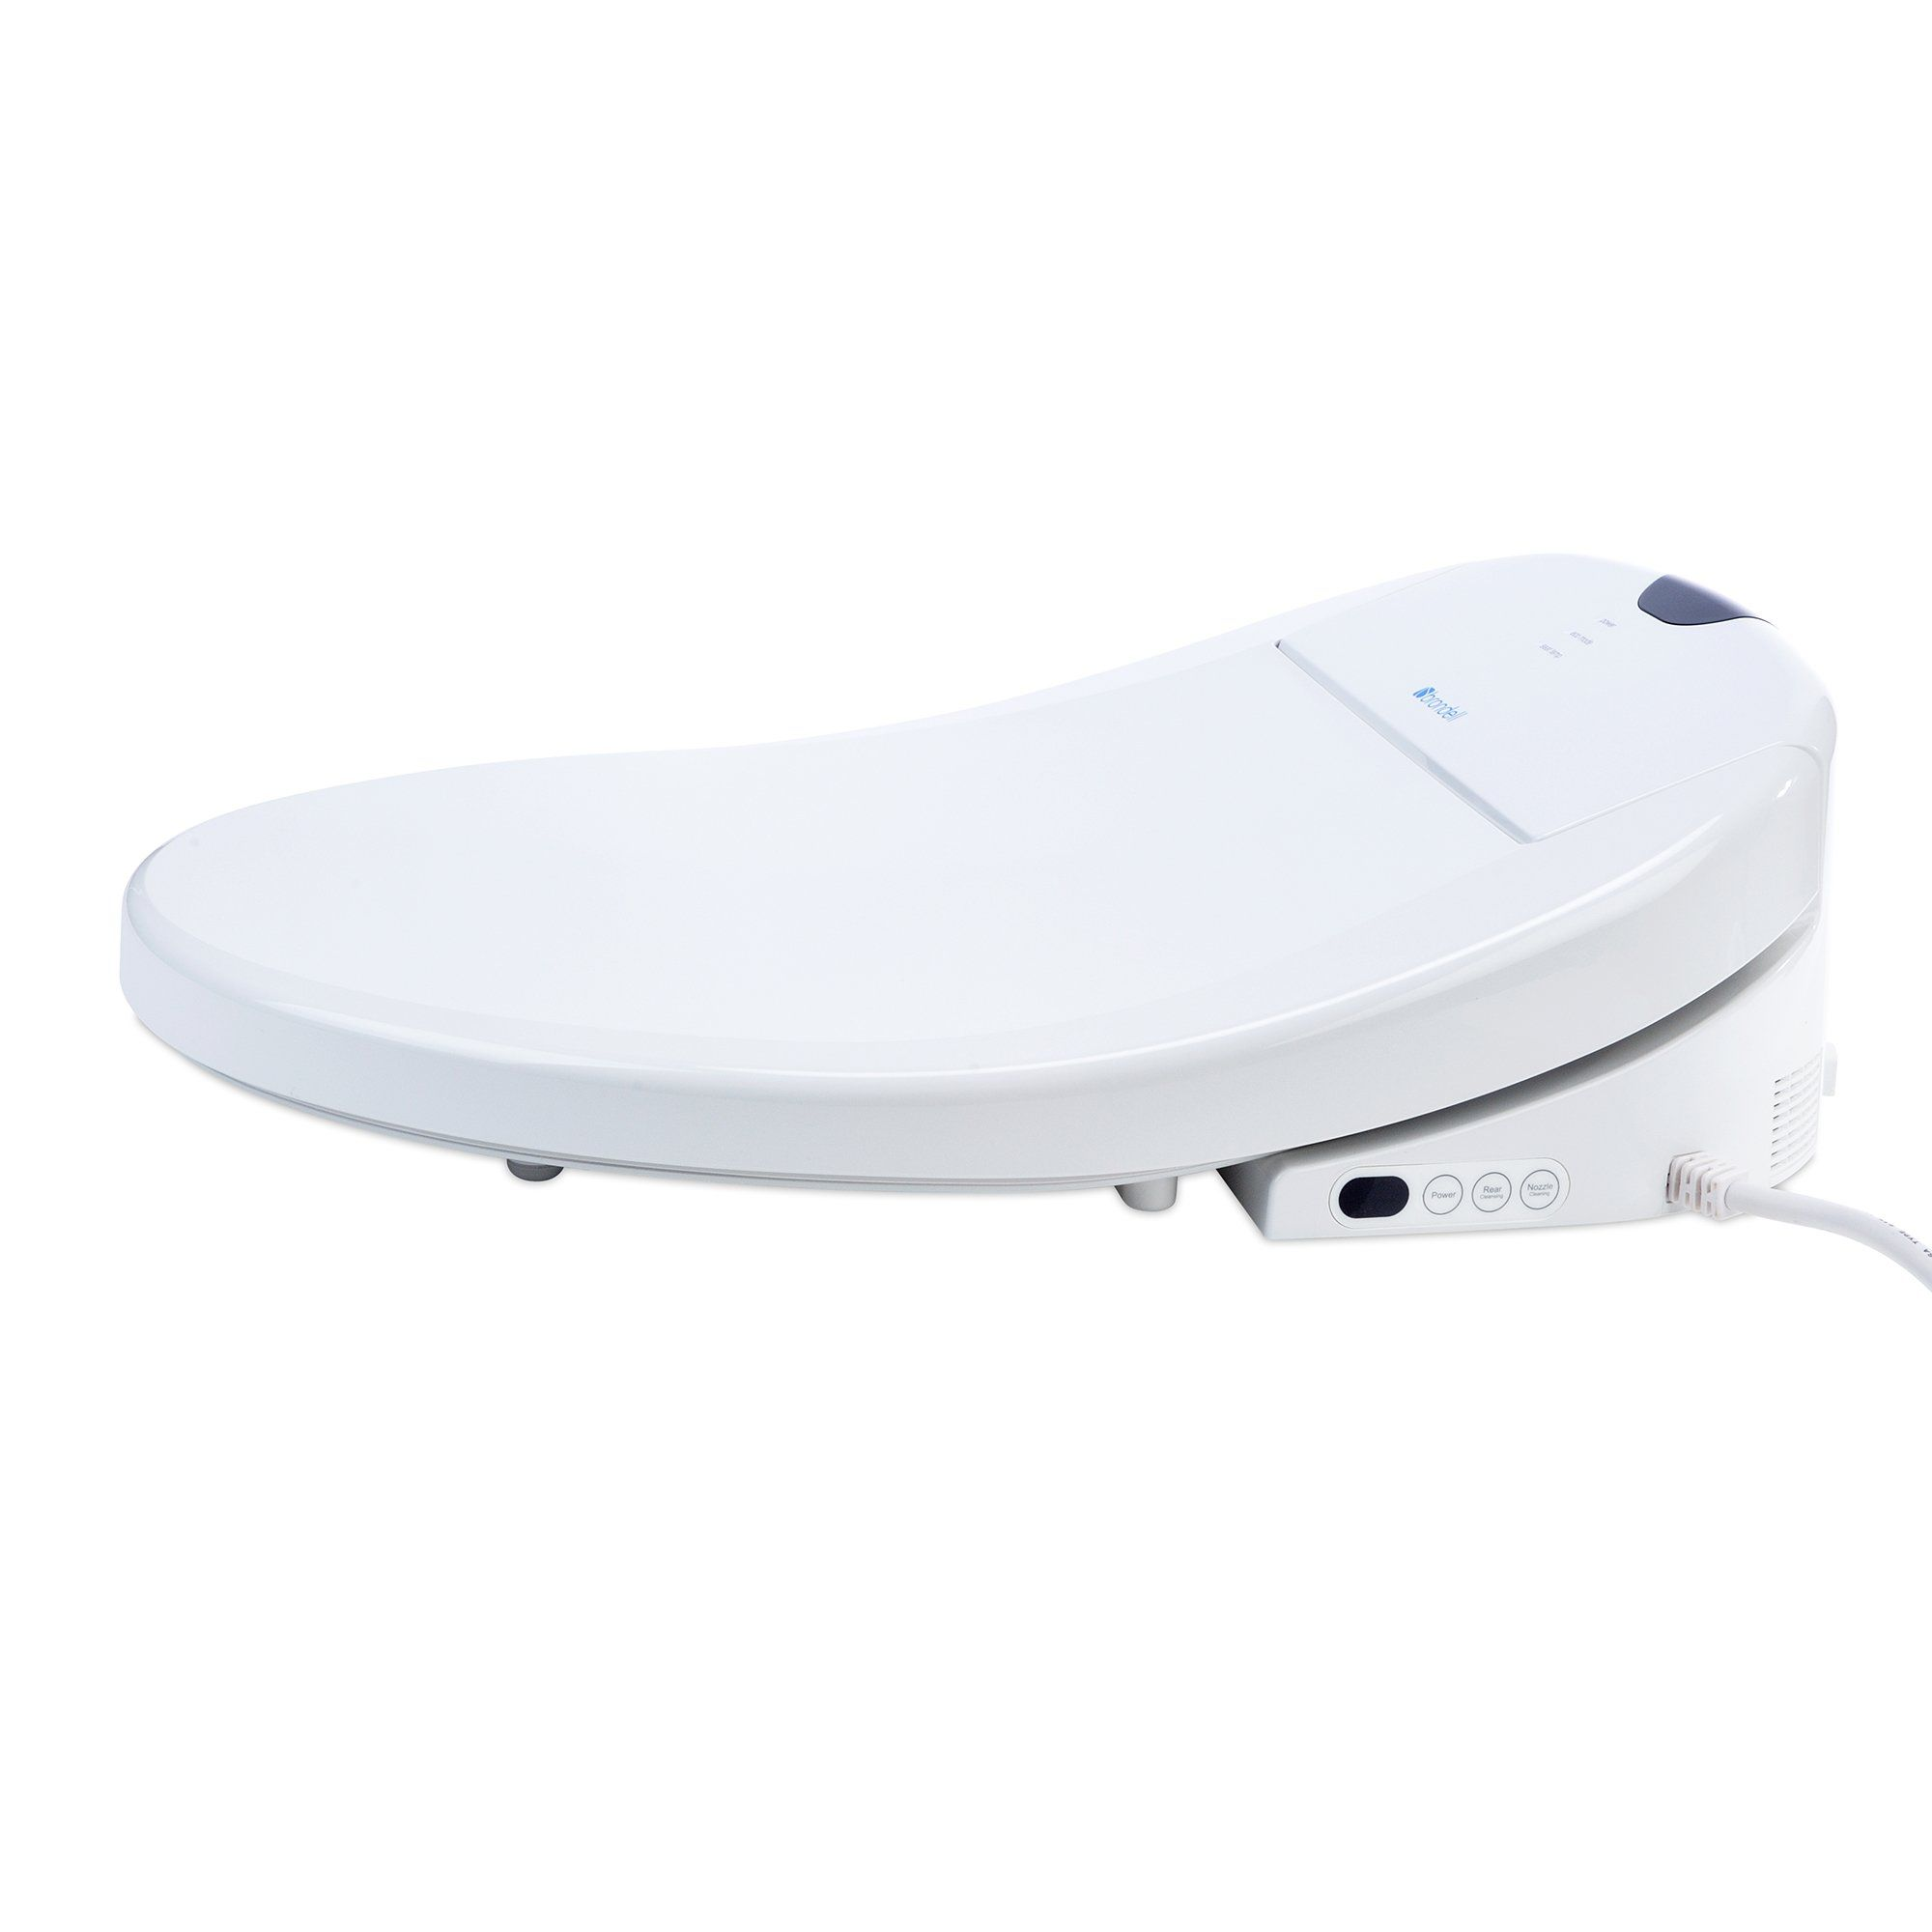 Brondell S1000ew Swash 1000 Advanced Bidet Elongated Toilet Seat